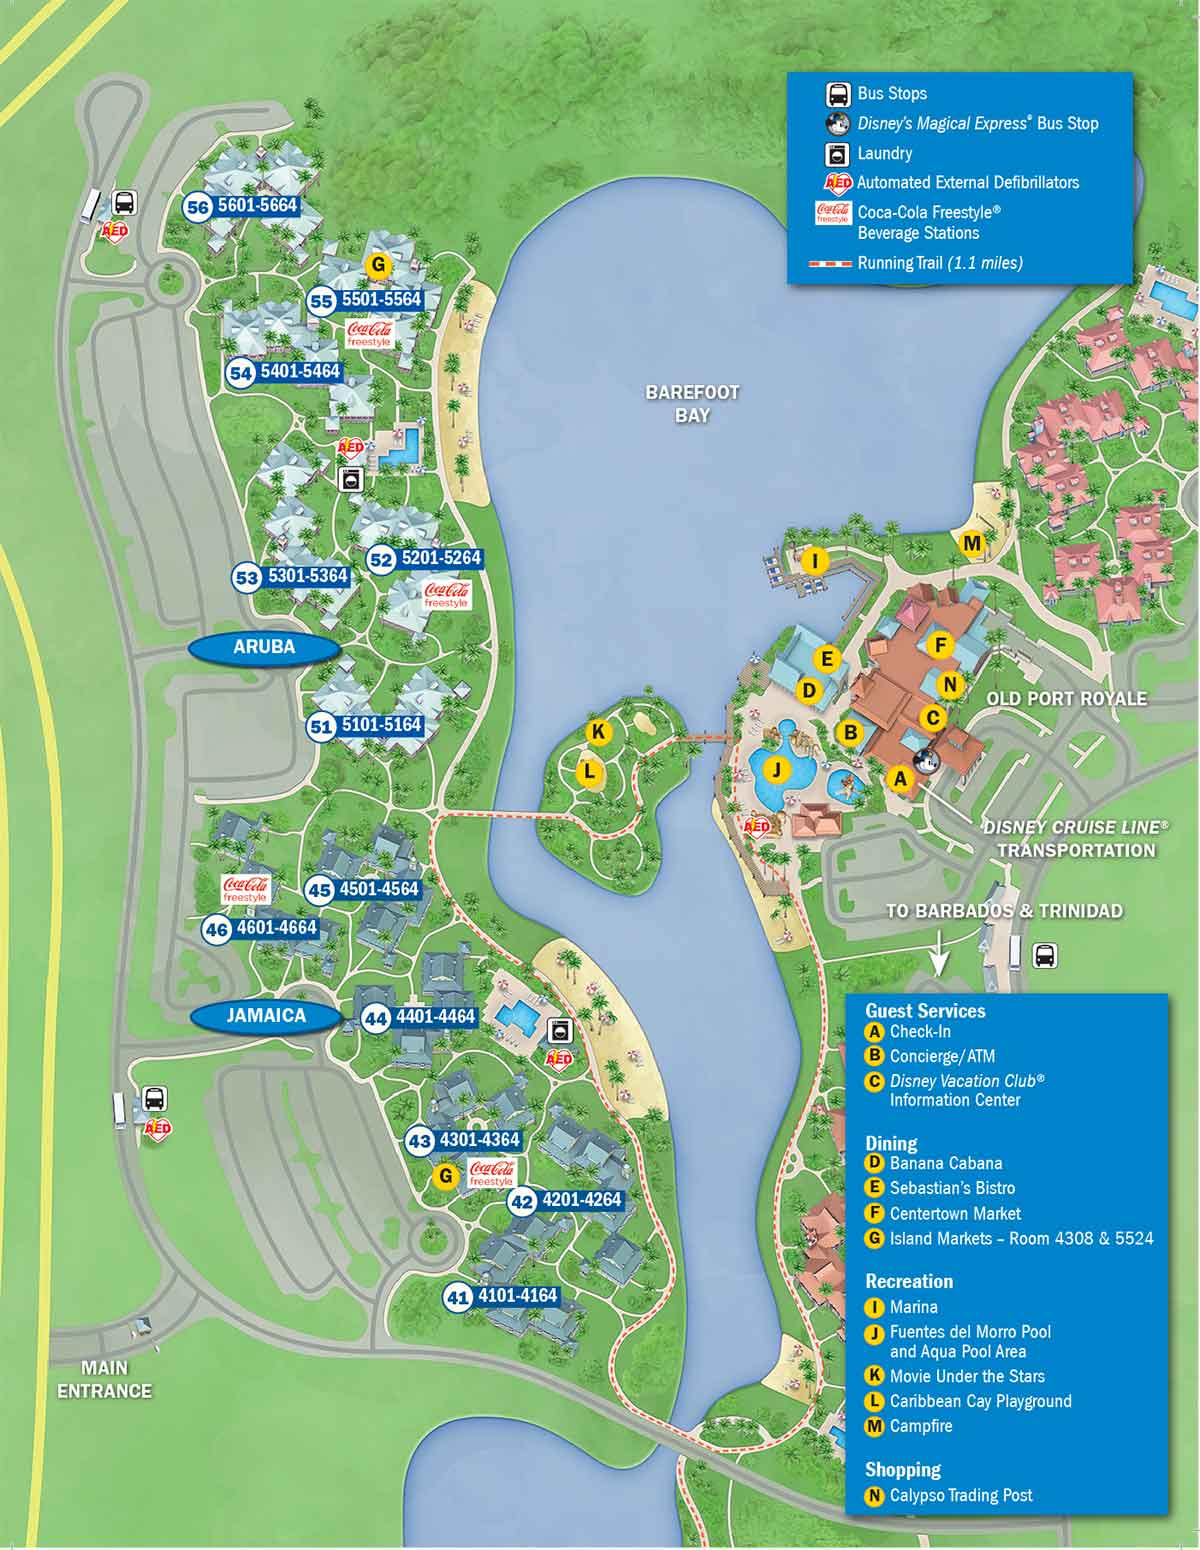 Disney\'s Caribbean Beach Resort Map - wdwinfo.com